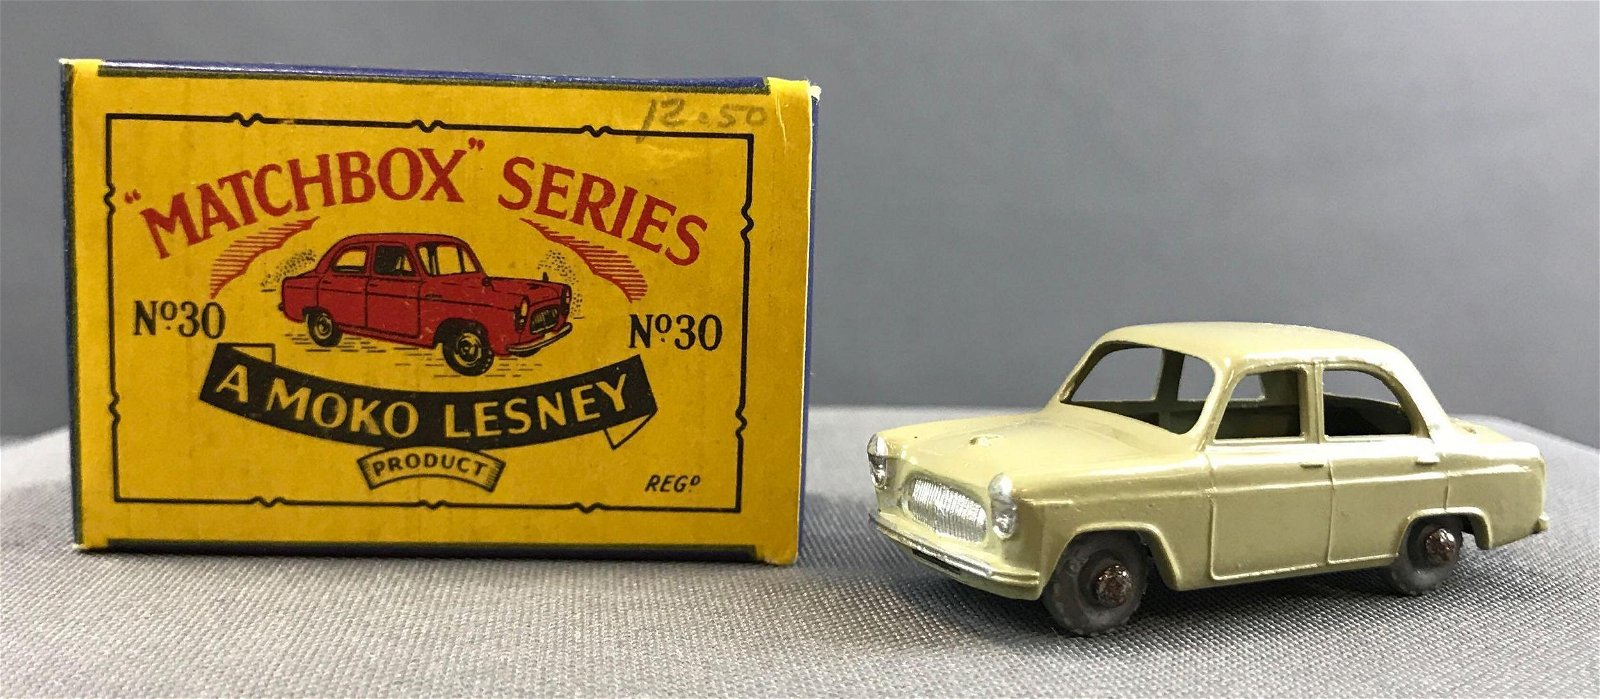 Matchbox No. 30 Ford Prefect die cast vehicle with